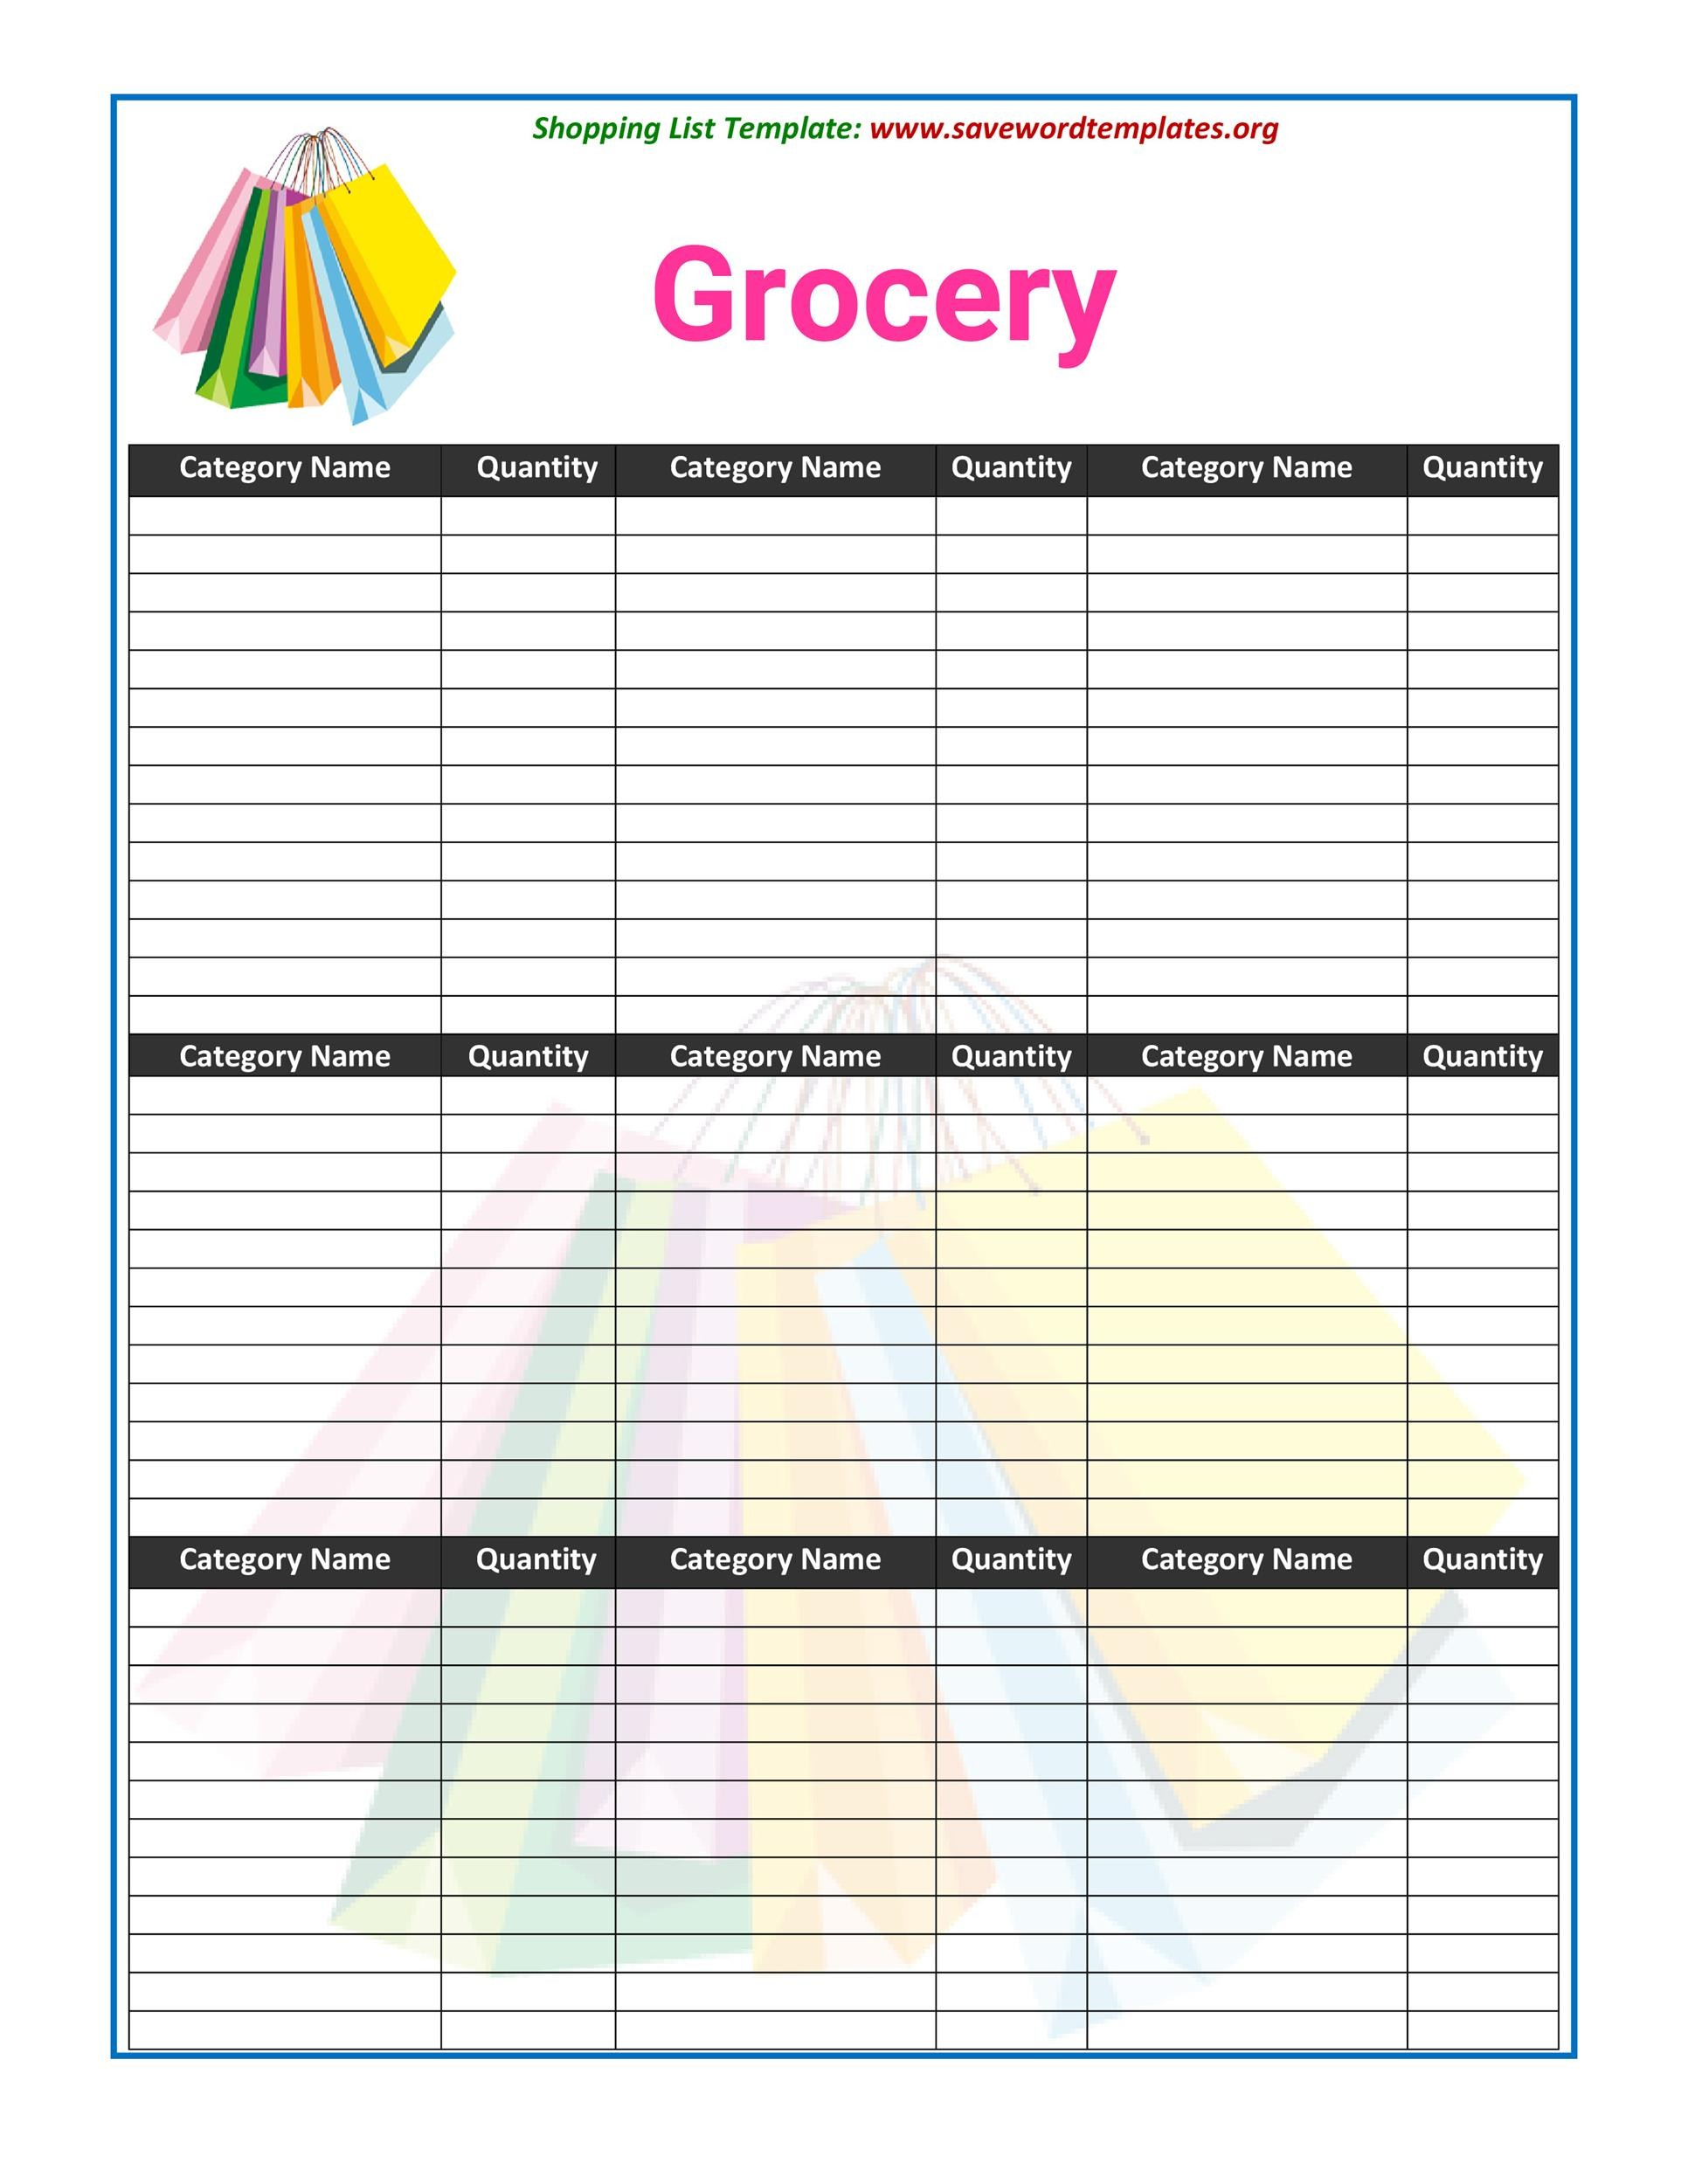 picture relating to Printable Grocery List by Category identify 40+ Printable Grocery Listing Templates (Buying Listing) ᐅ